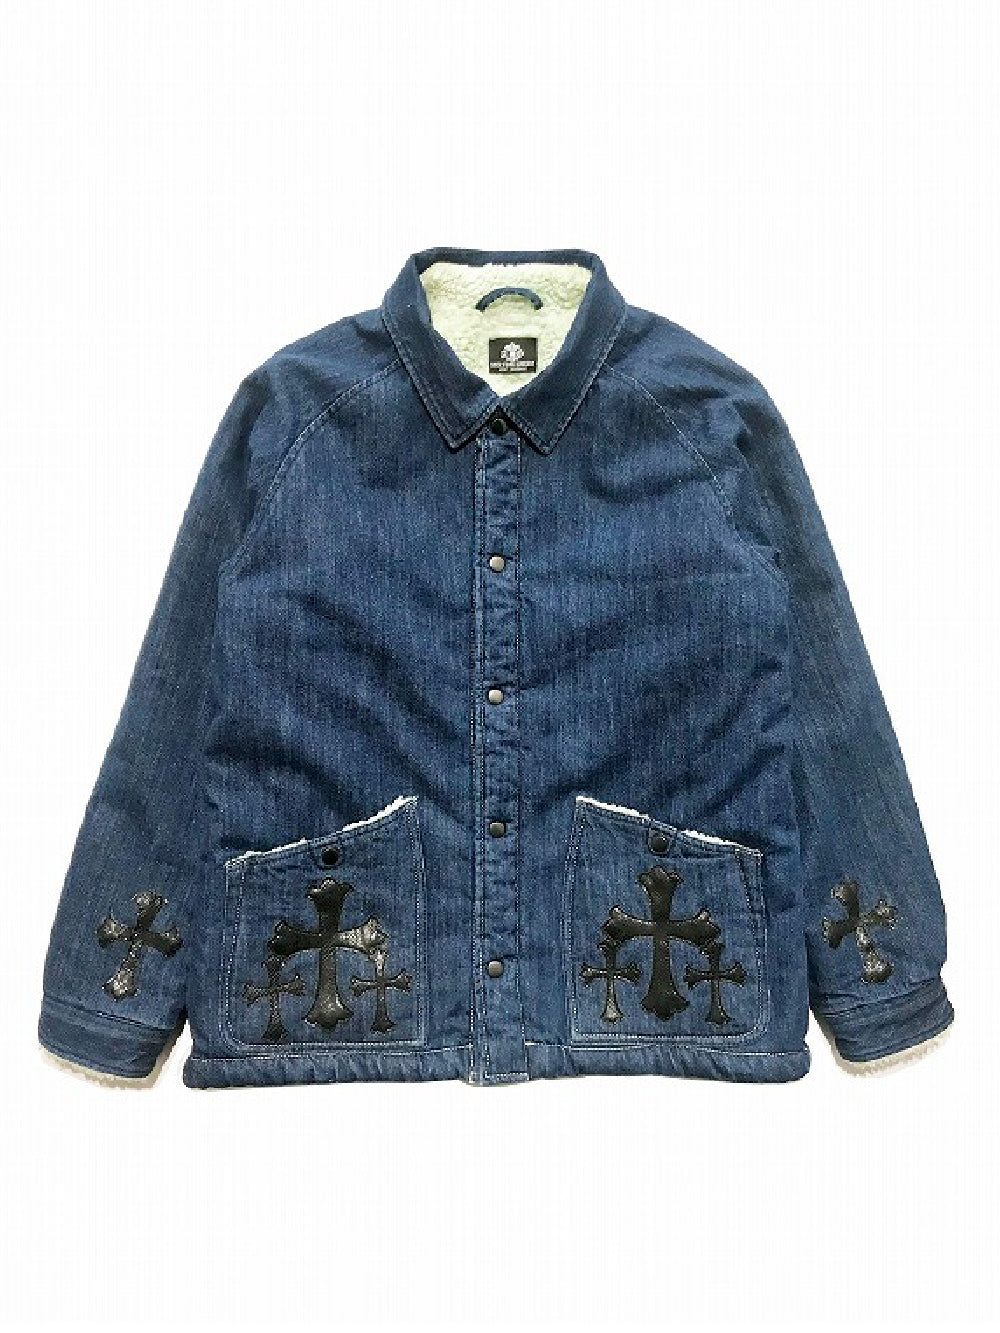 BOA JACKET / INDIGO BLUE